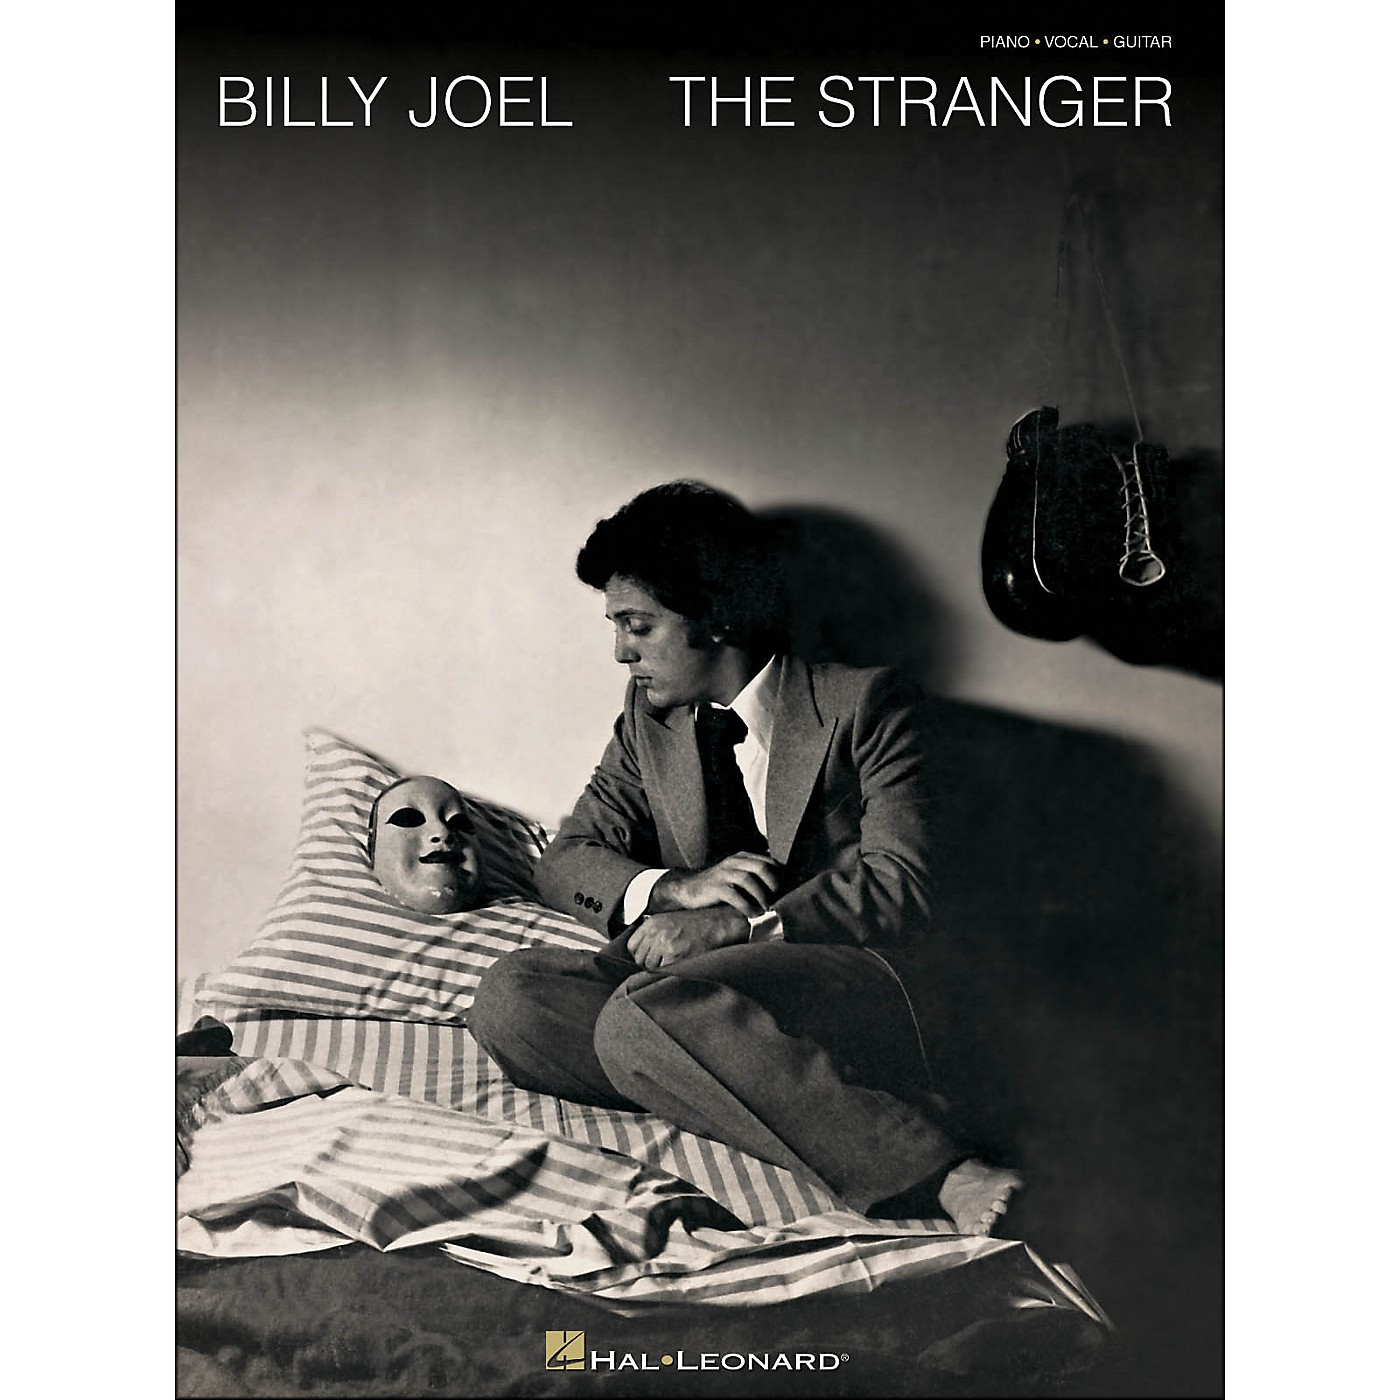 Hal Leonard Billy Joel - The Stranger arranged for piano, vocal, and guitar (P/V/G) thumbnail